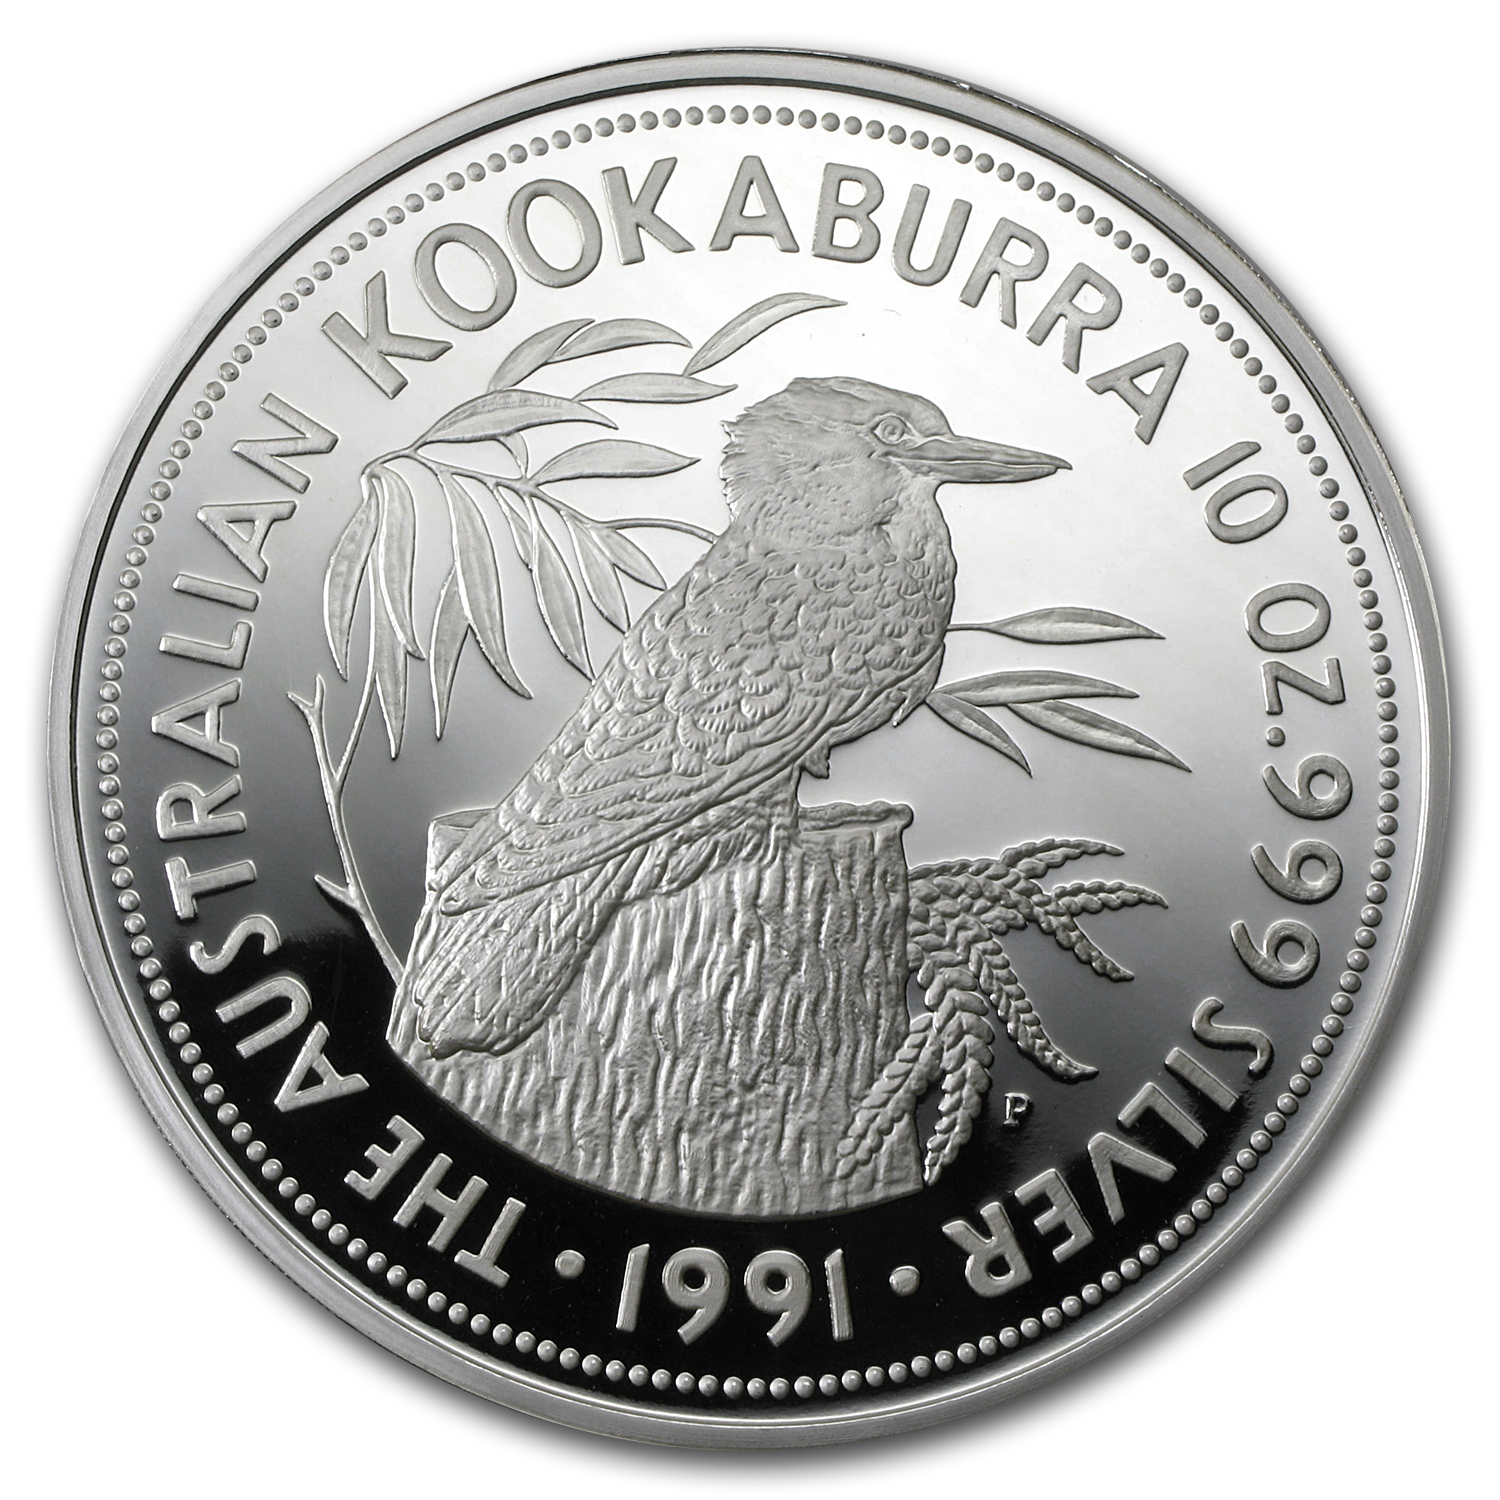 1991 Australia 10 oz Silver Kookaburra Proof (w/Box, No COA)